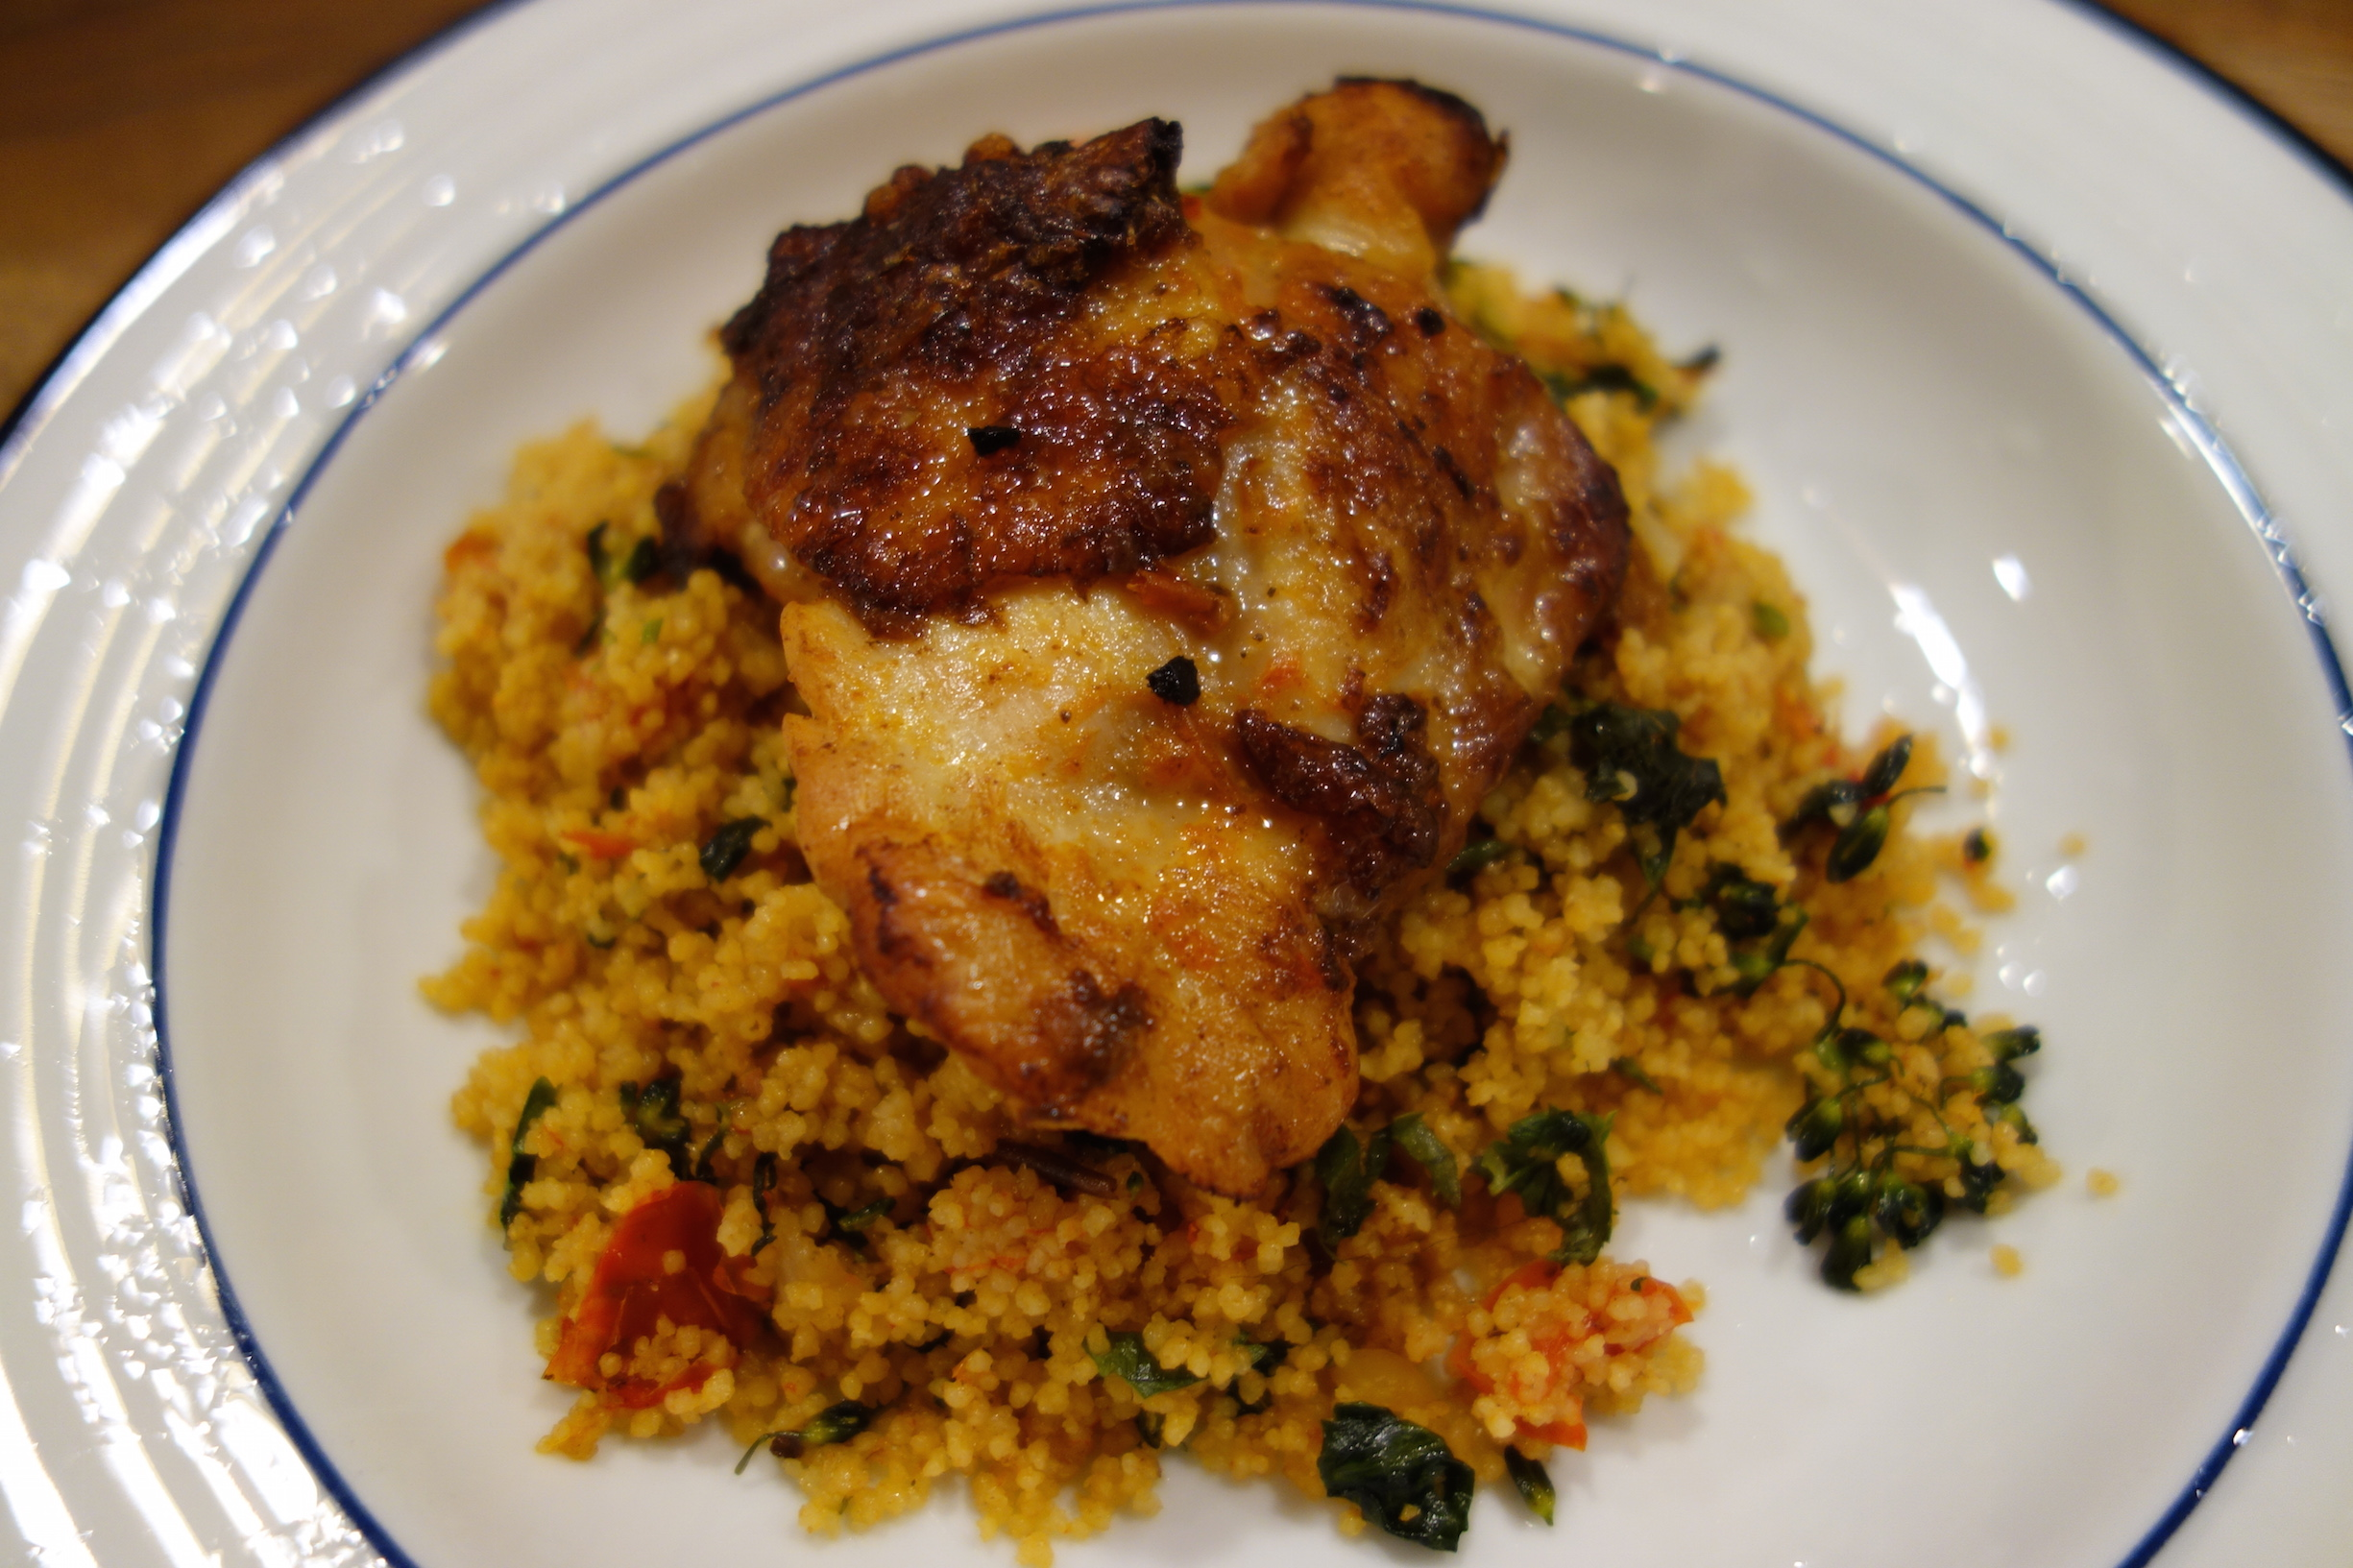 ... chicken save one pan chicken couscous chickenchunks harissa chicken